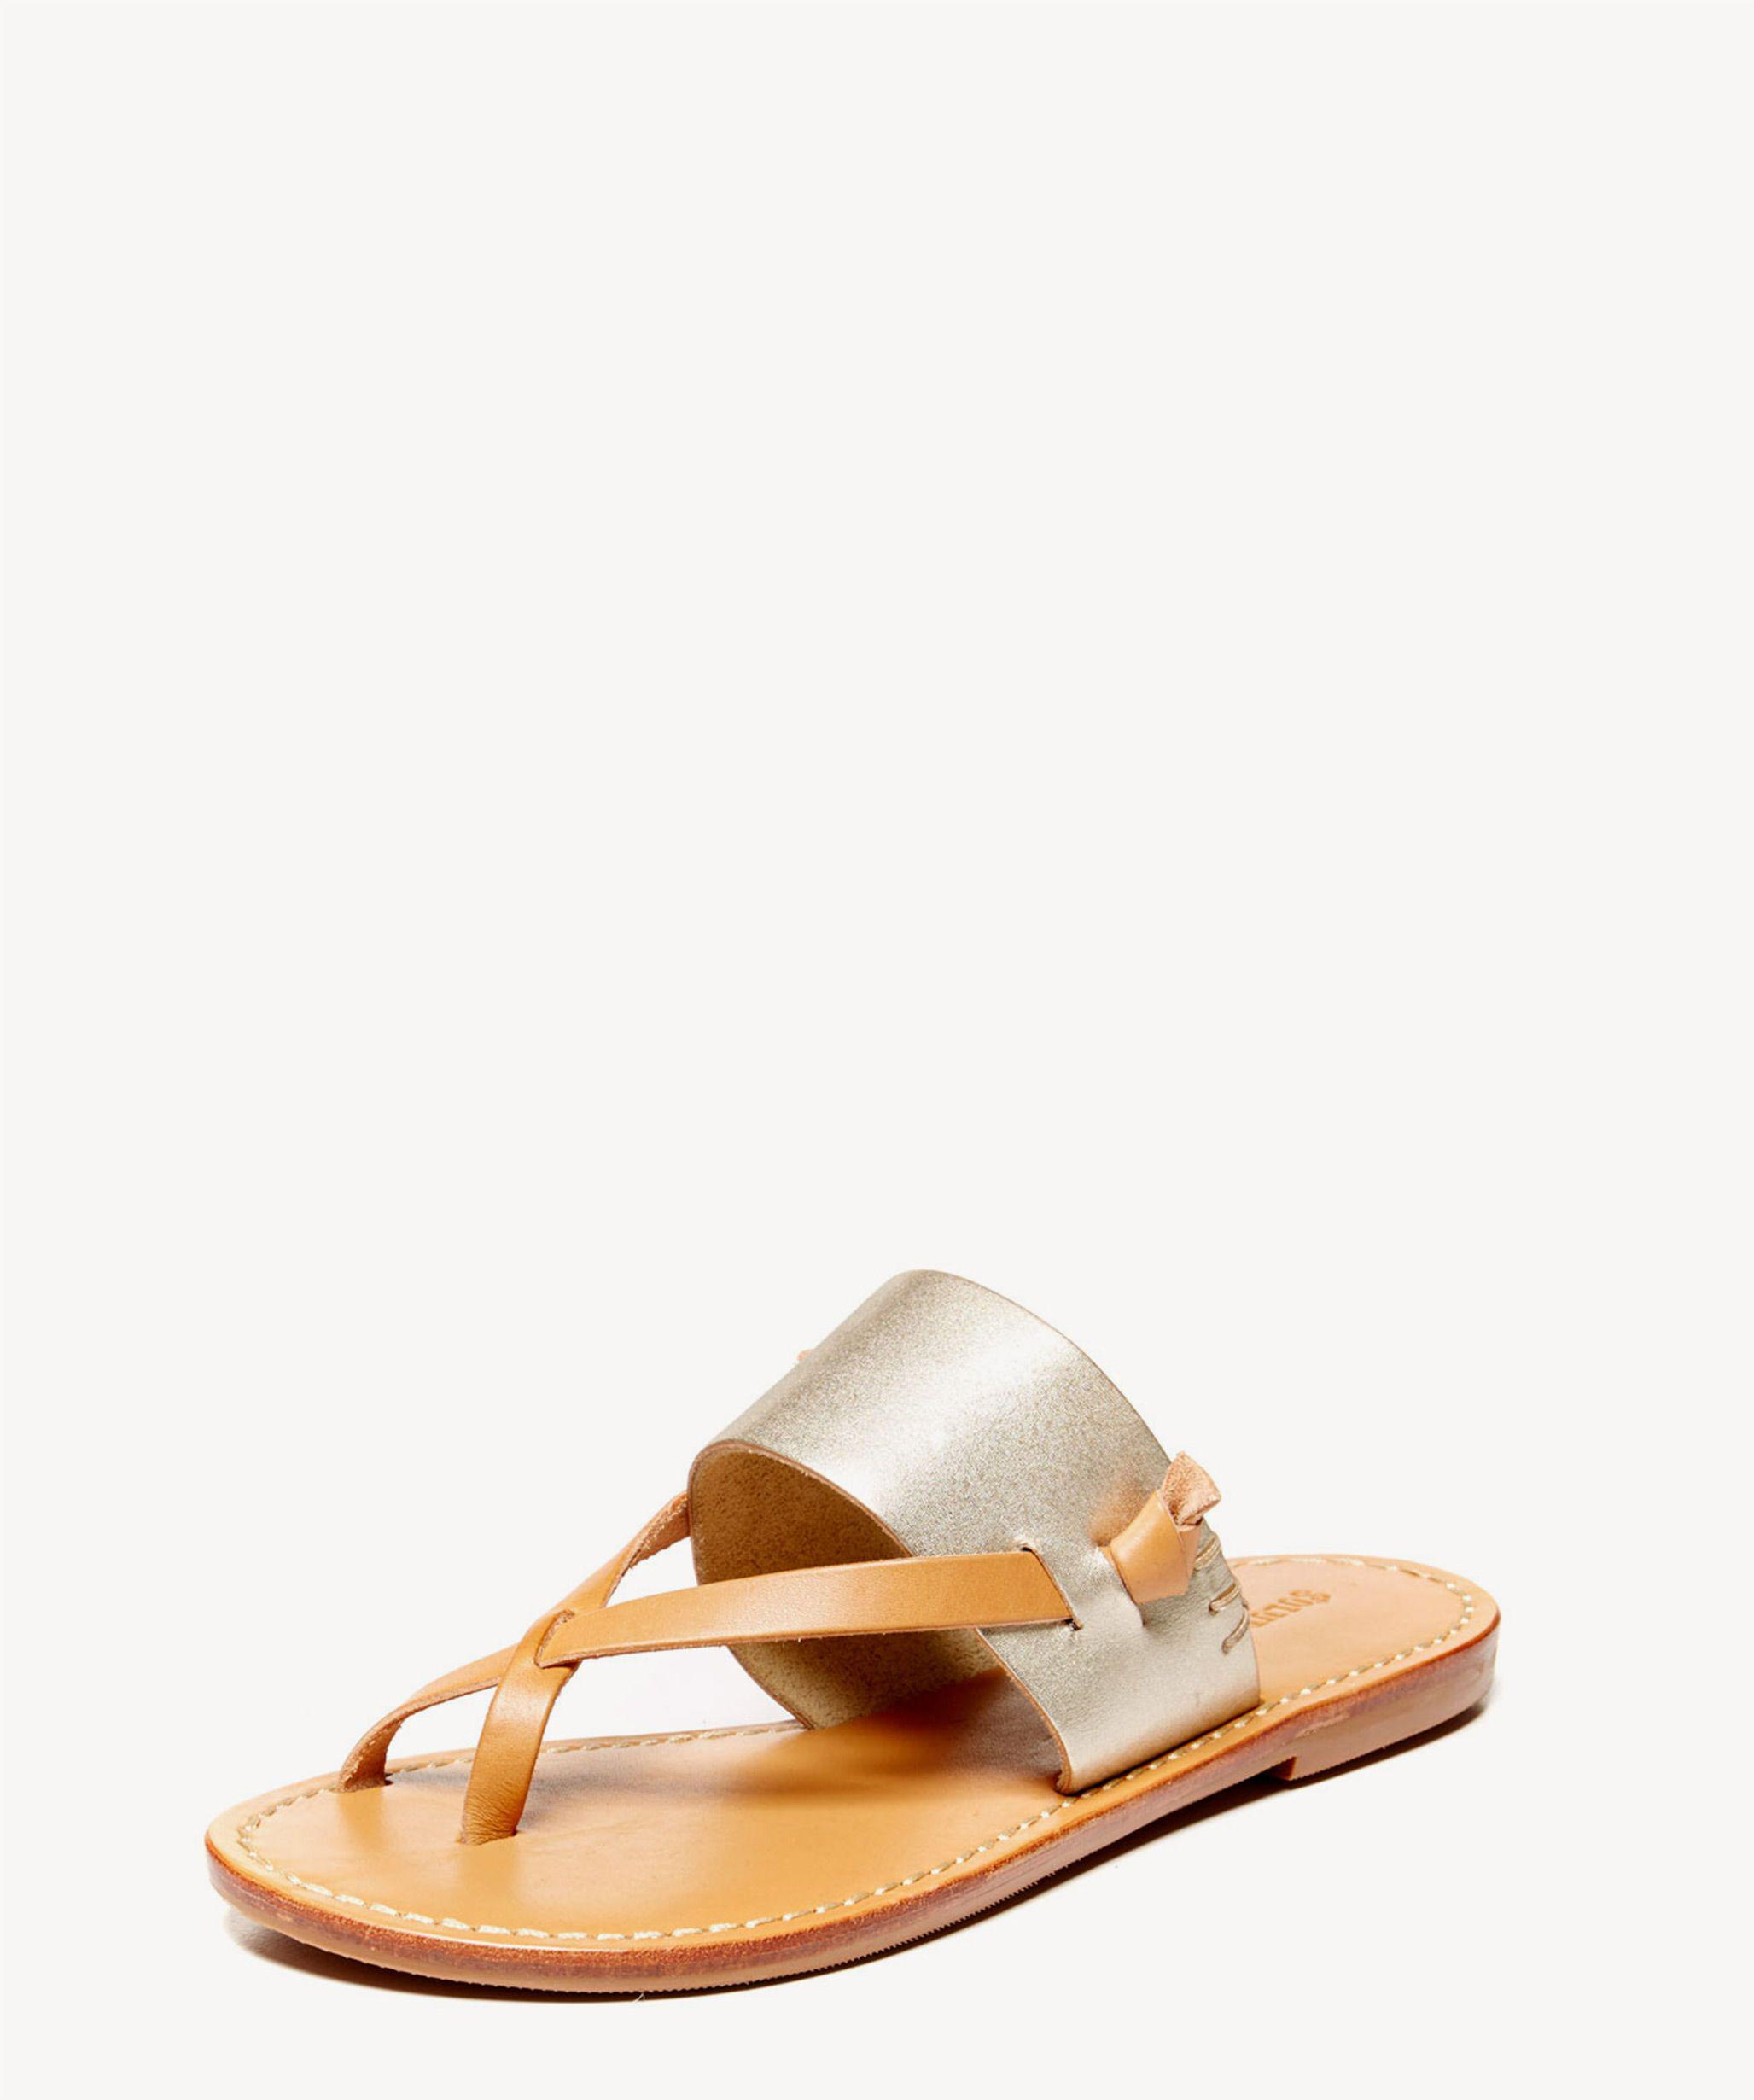 1ced2970c6bc Lyst - Soludos Slotted Thong Sandal Solid Flip Flop